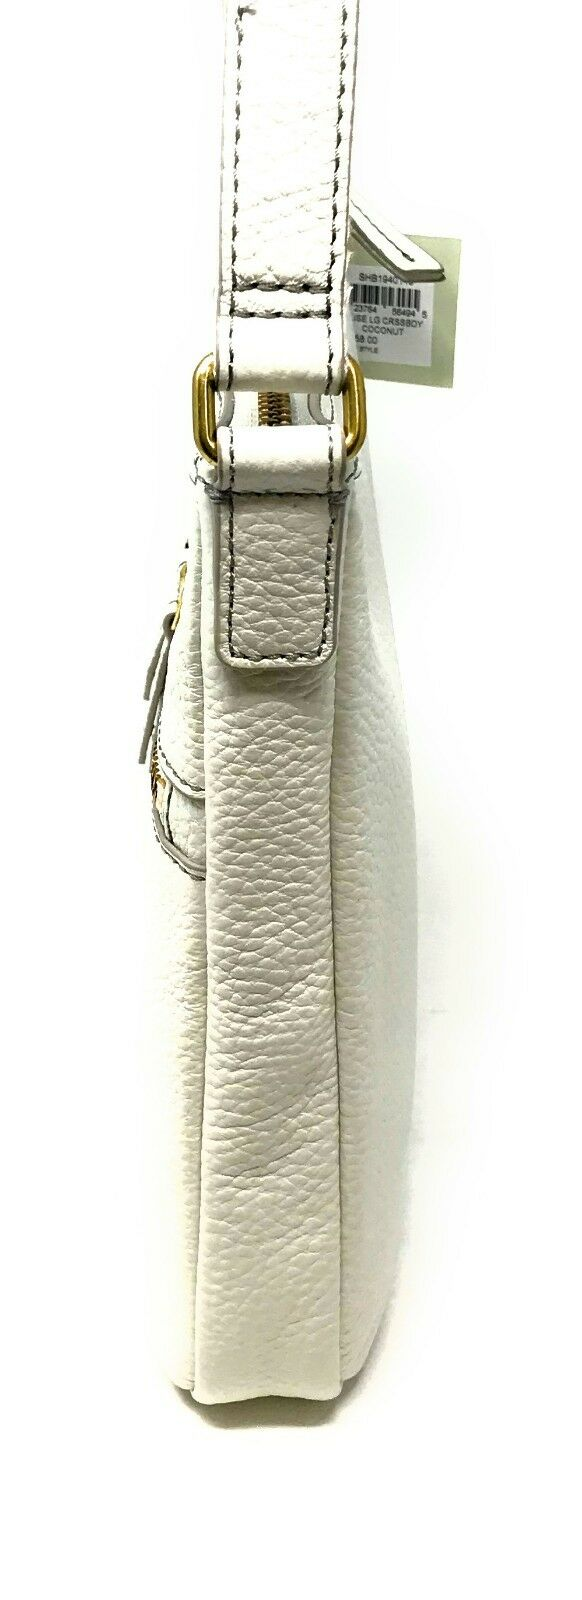 Fossil Elise Genuine Leather Crossbody Shoulder Bag Coconut SHB1940146 $158